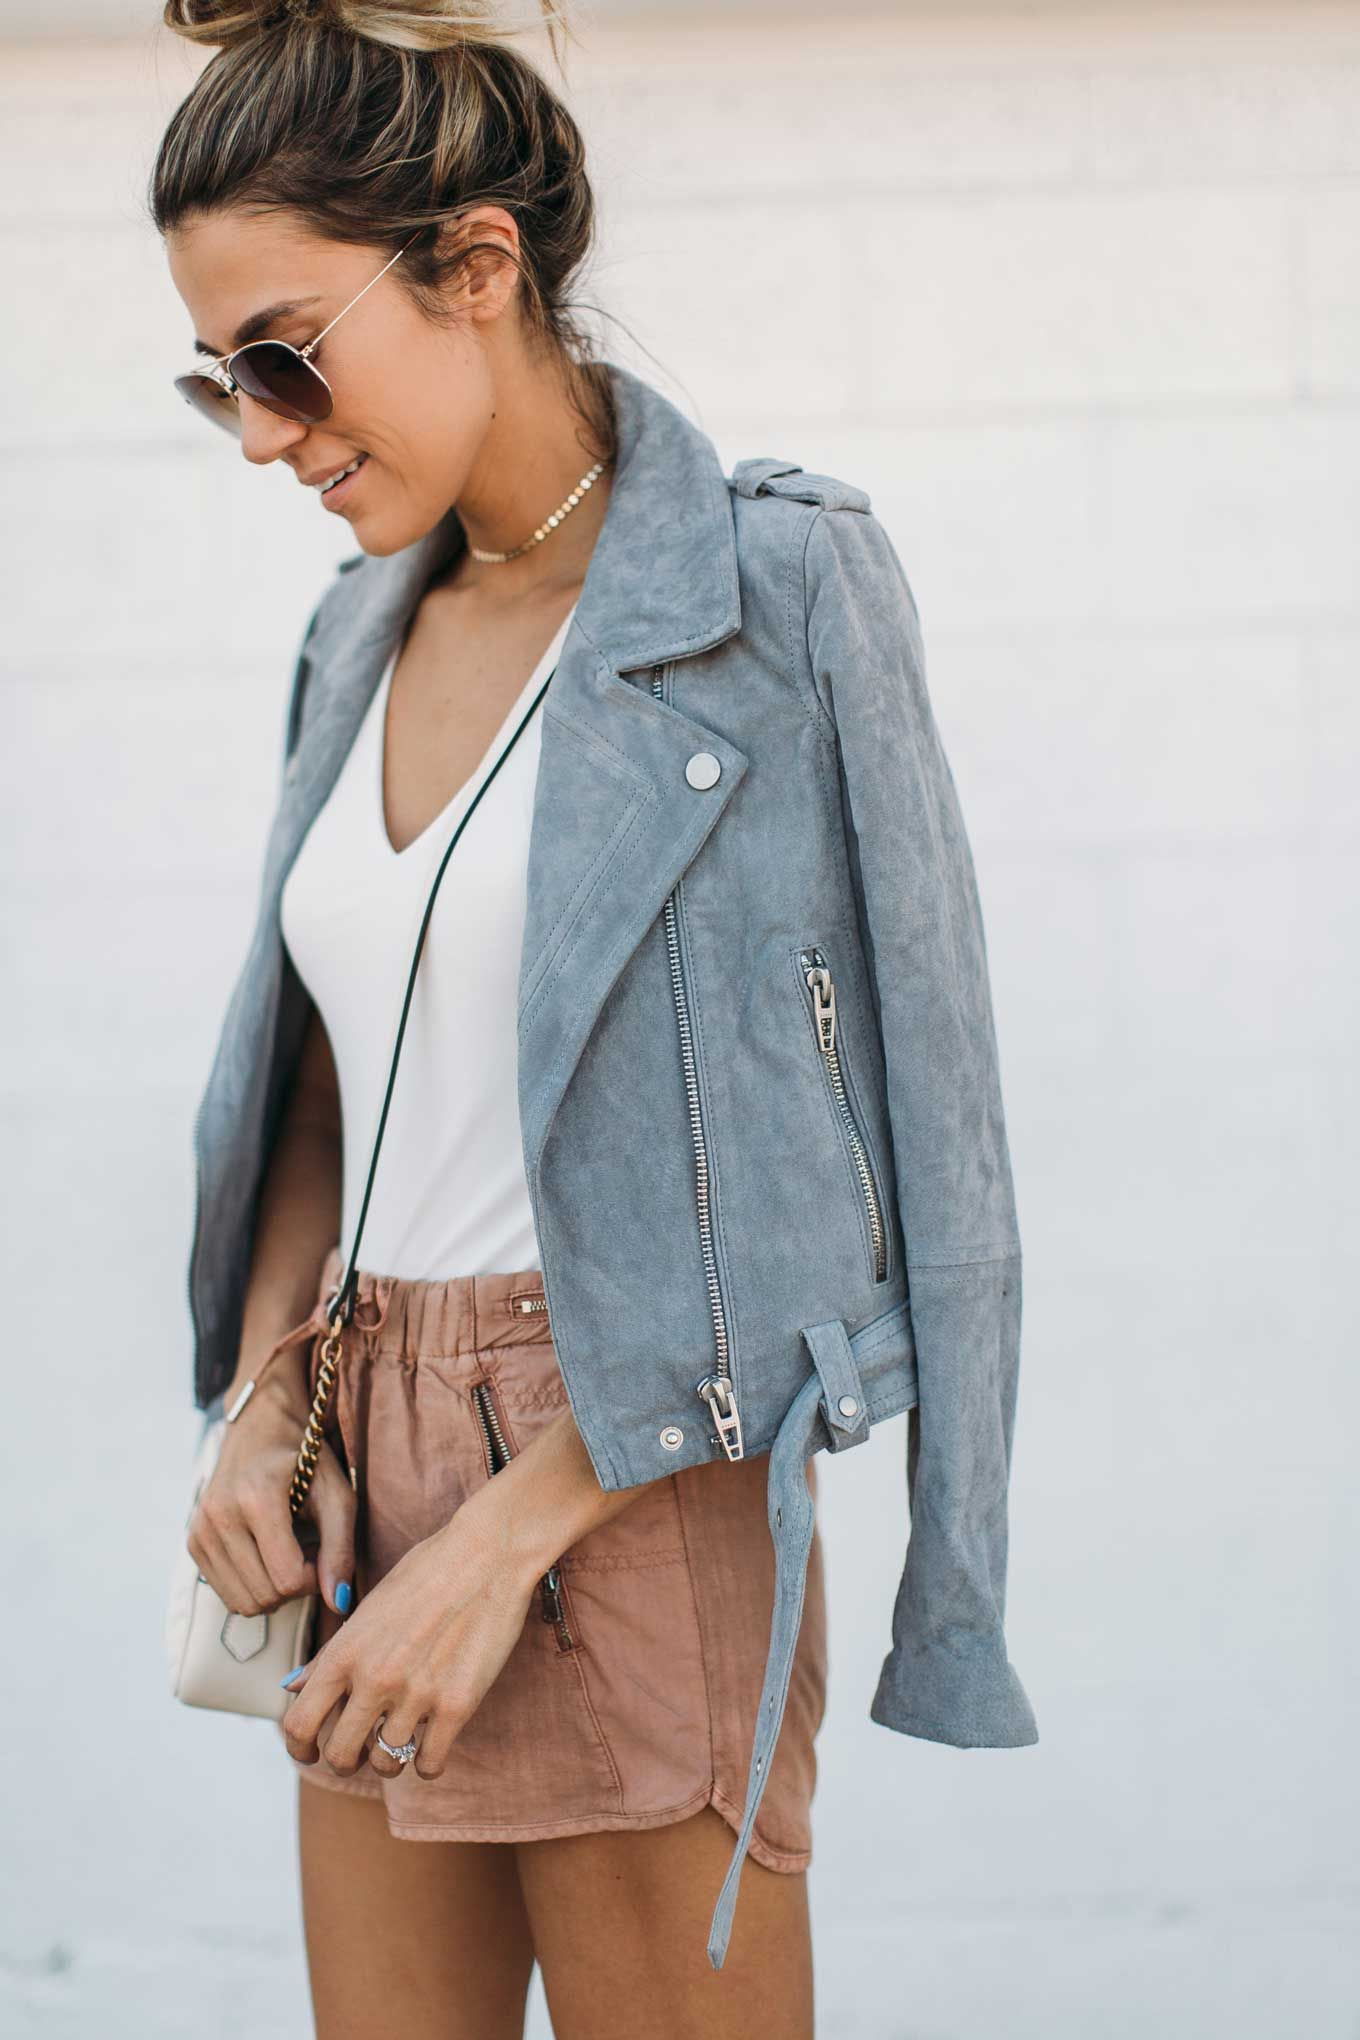 The Must Have Neutral Layers for Spring   Fashion Tips   Fashion ... c4f702a51c33